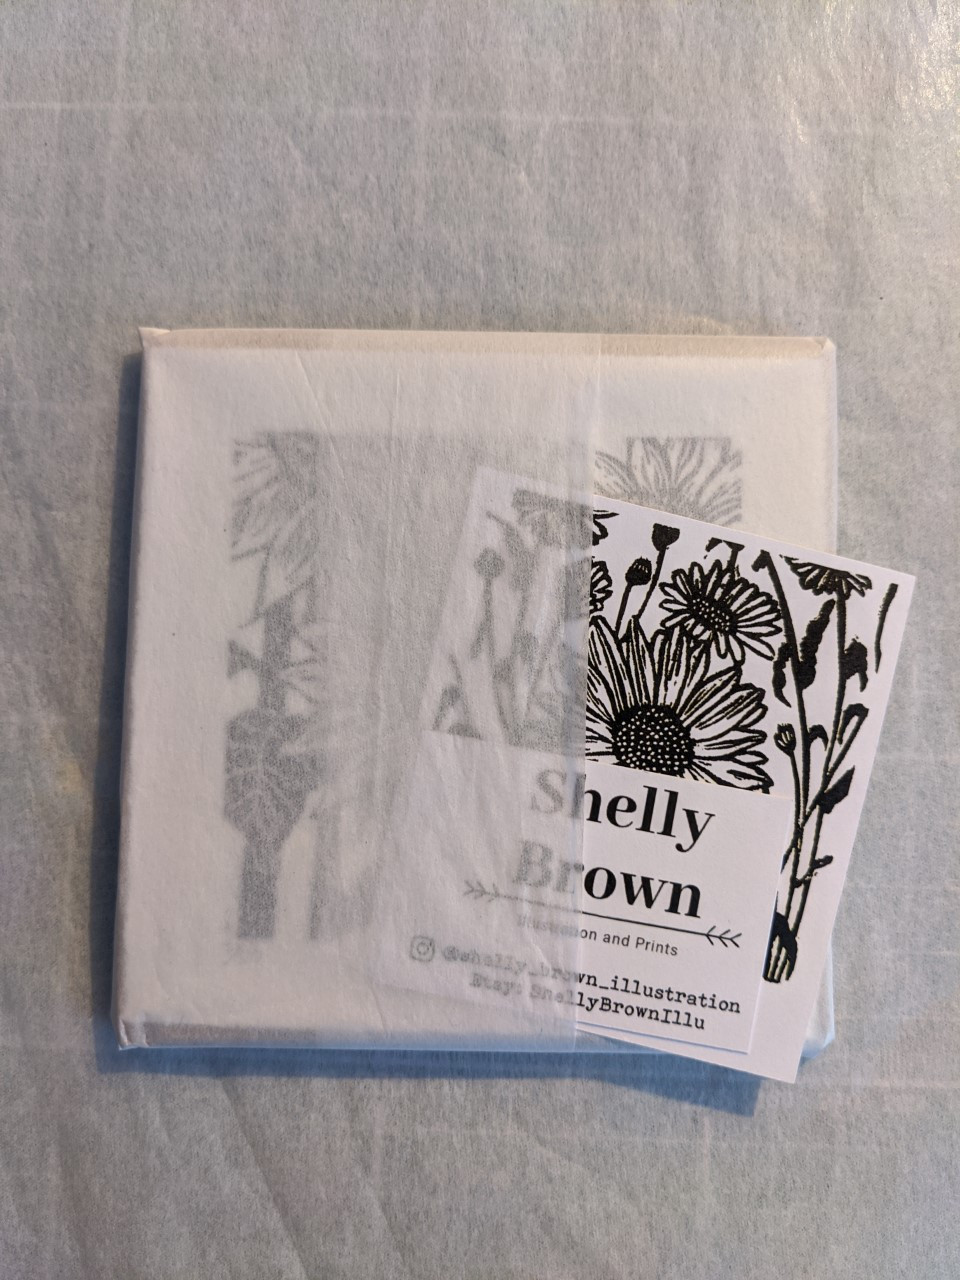 shelly brown illustration packaging plastic free linocut printmaker